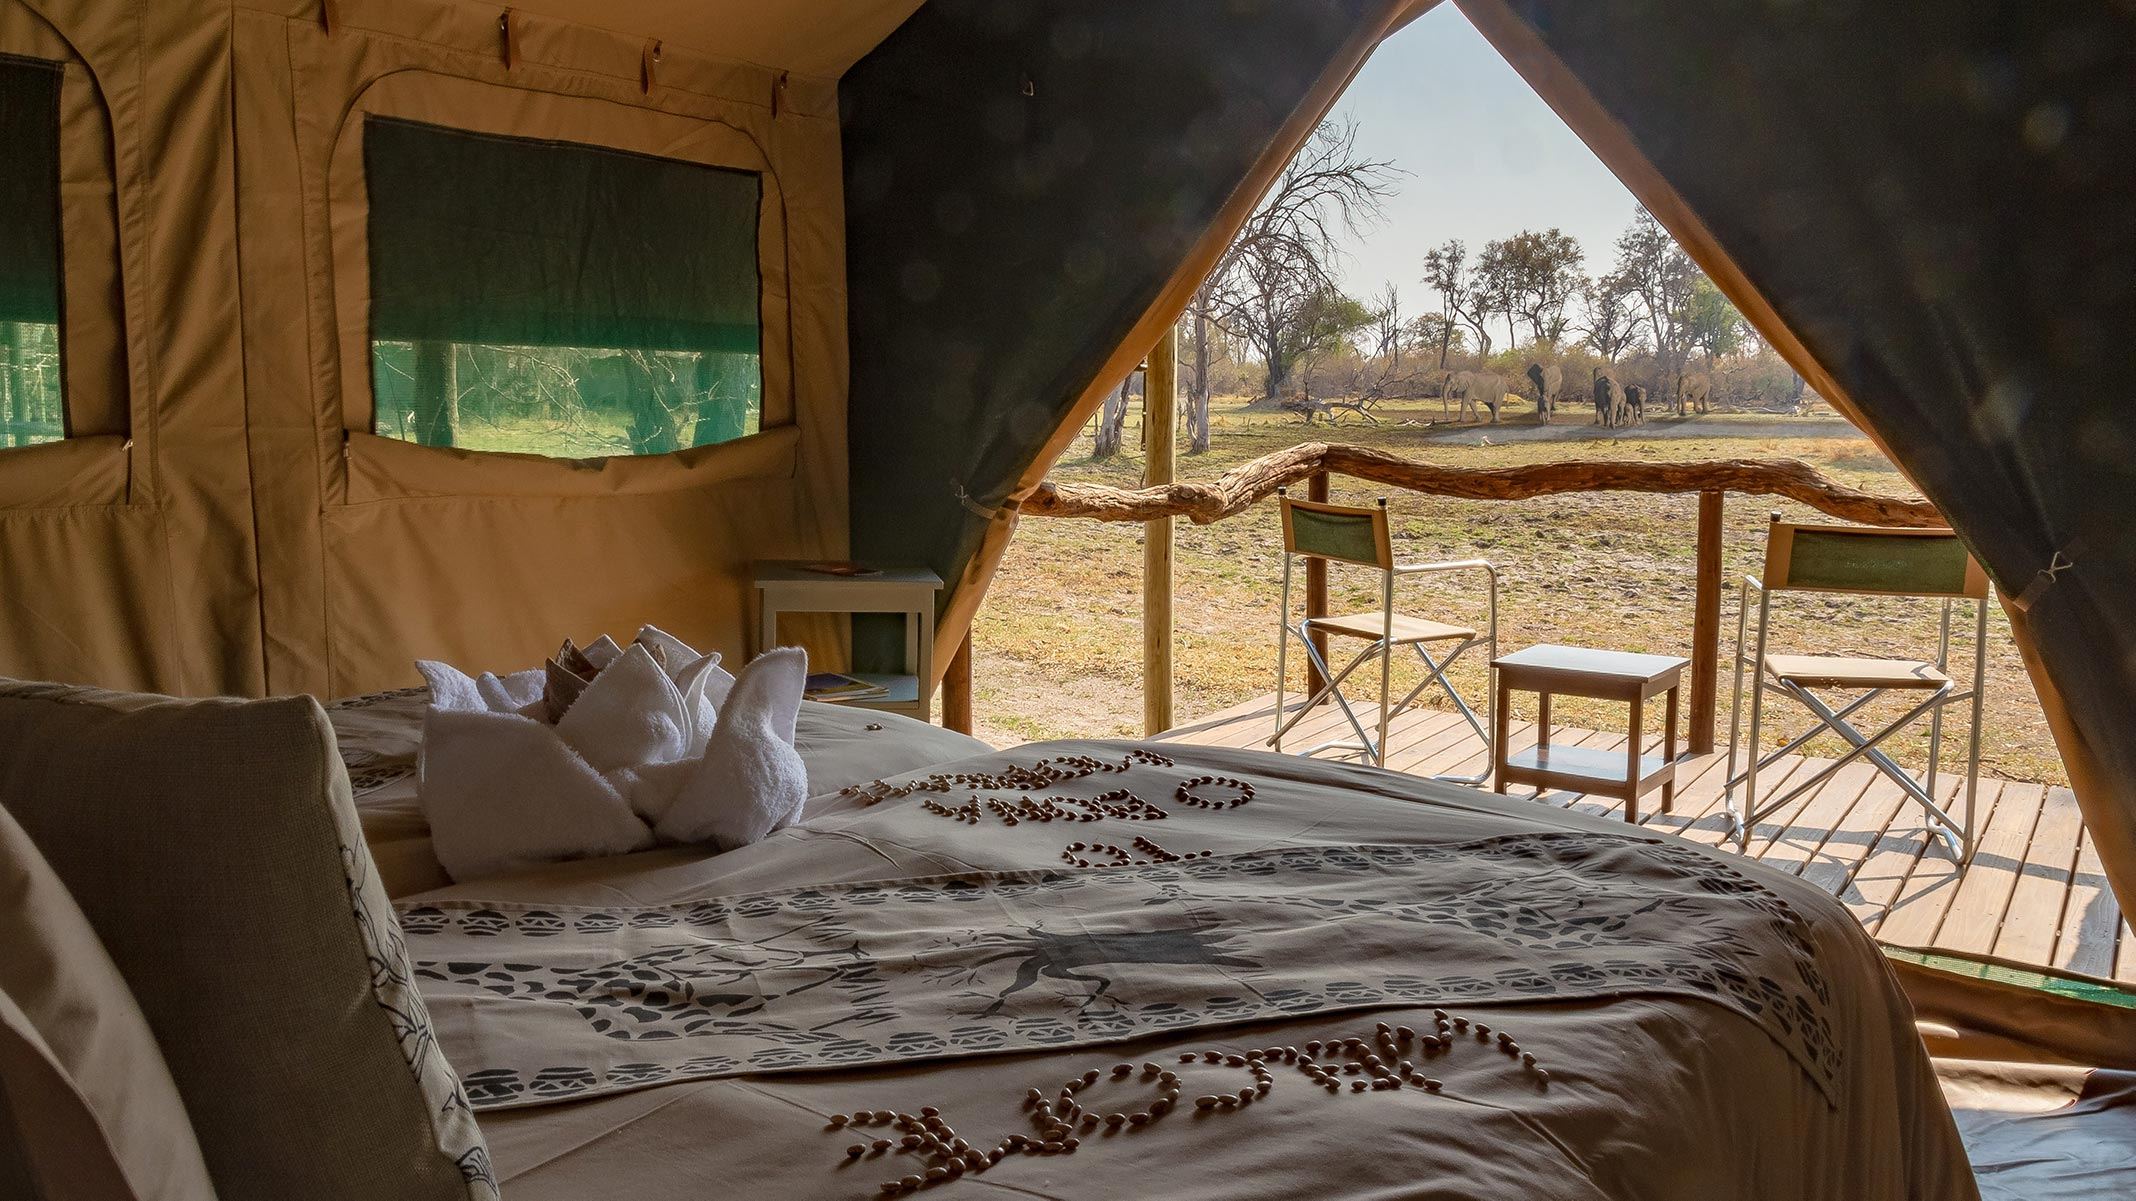 Bedroom with a stunning view out in the African Bush